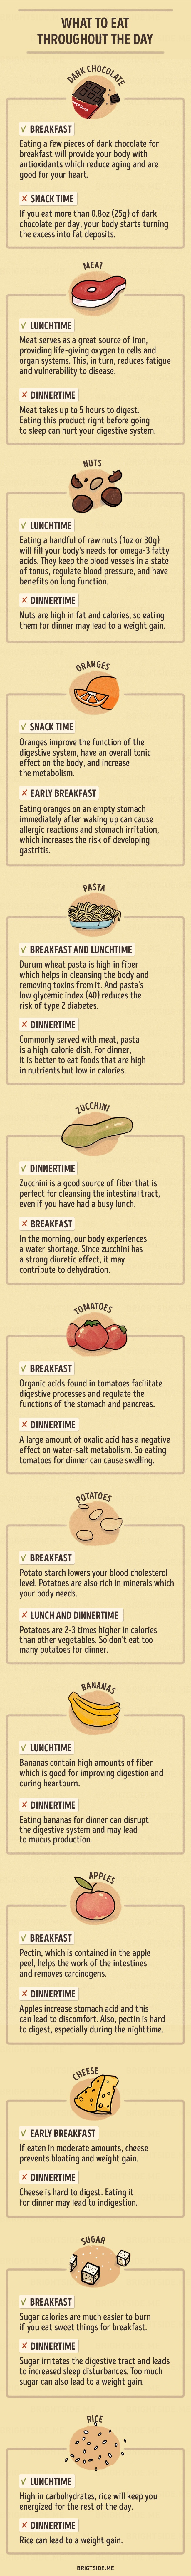 When And How Should You Consume Your favourite Food?